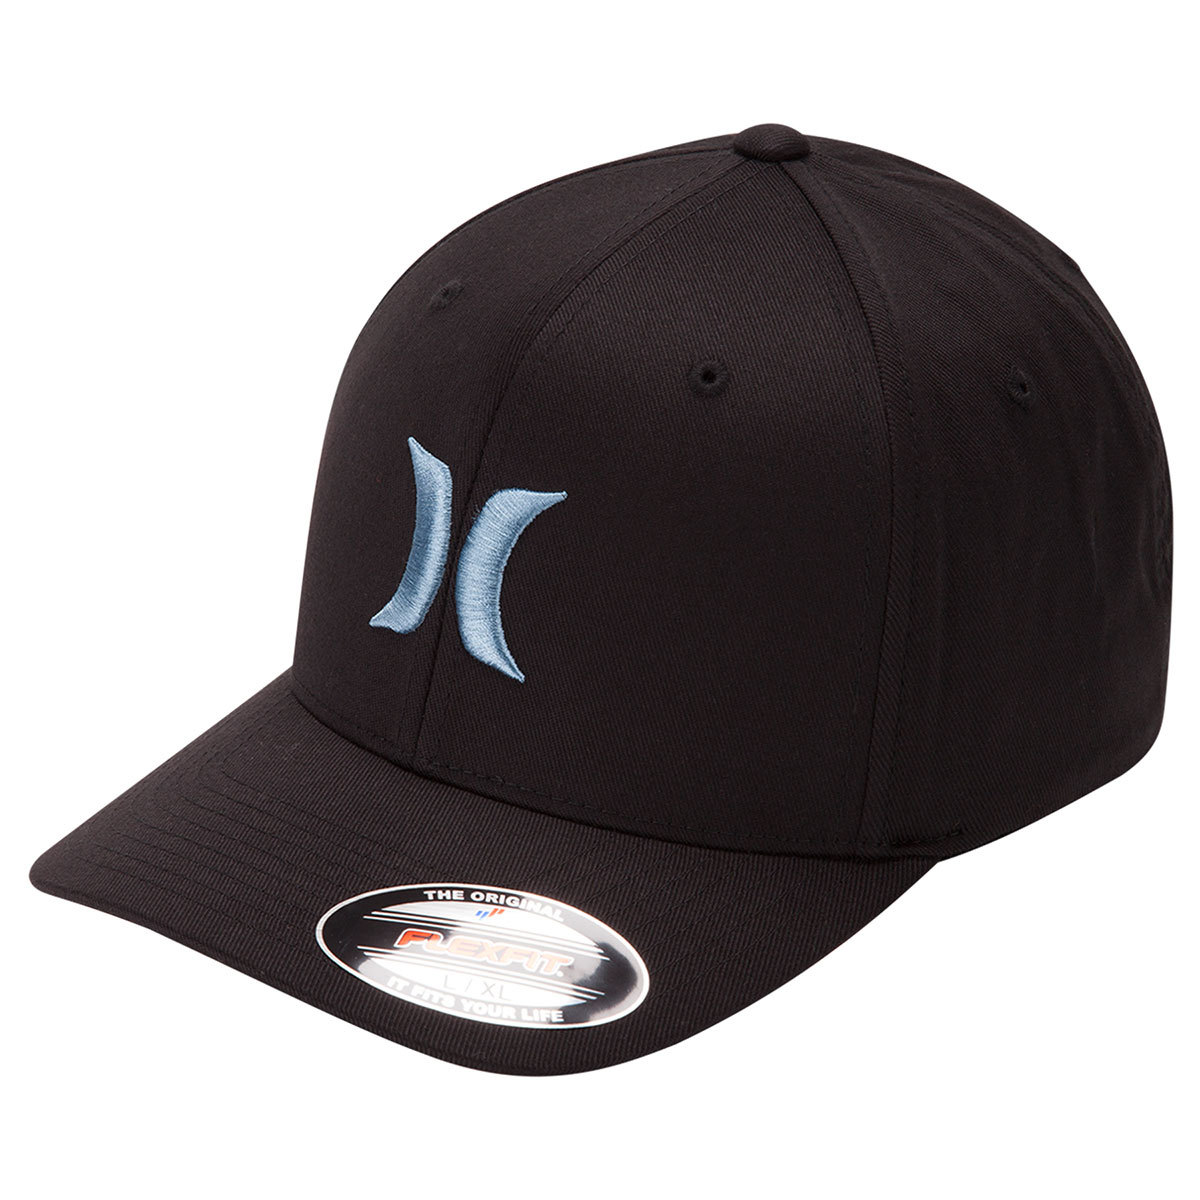 Hurley Guys' One And Only Hat - Black, L/XL